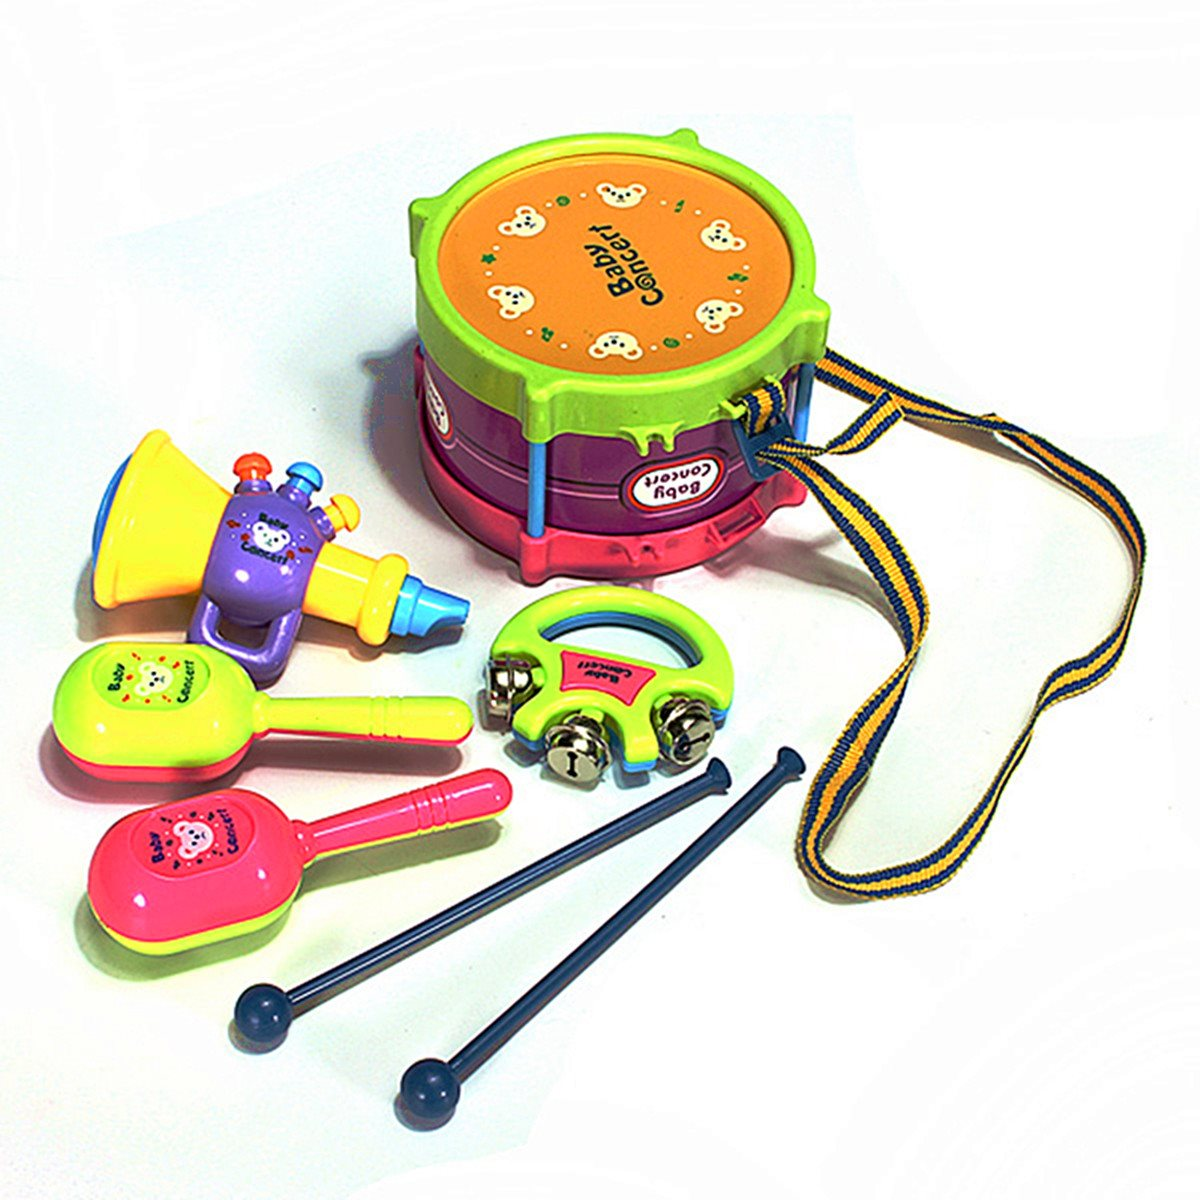 Plastic Toy Musical Instruments : Popular plastic musical instrument buy cheap